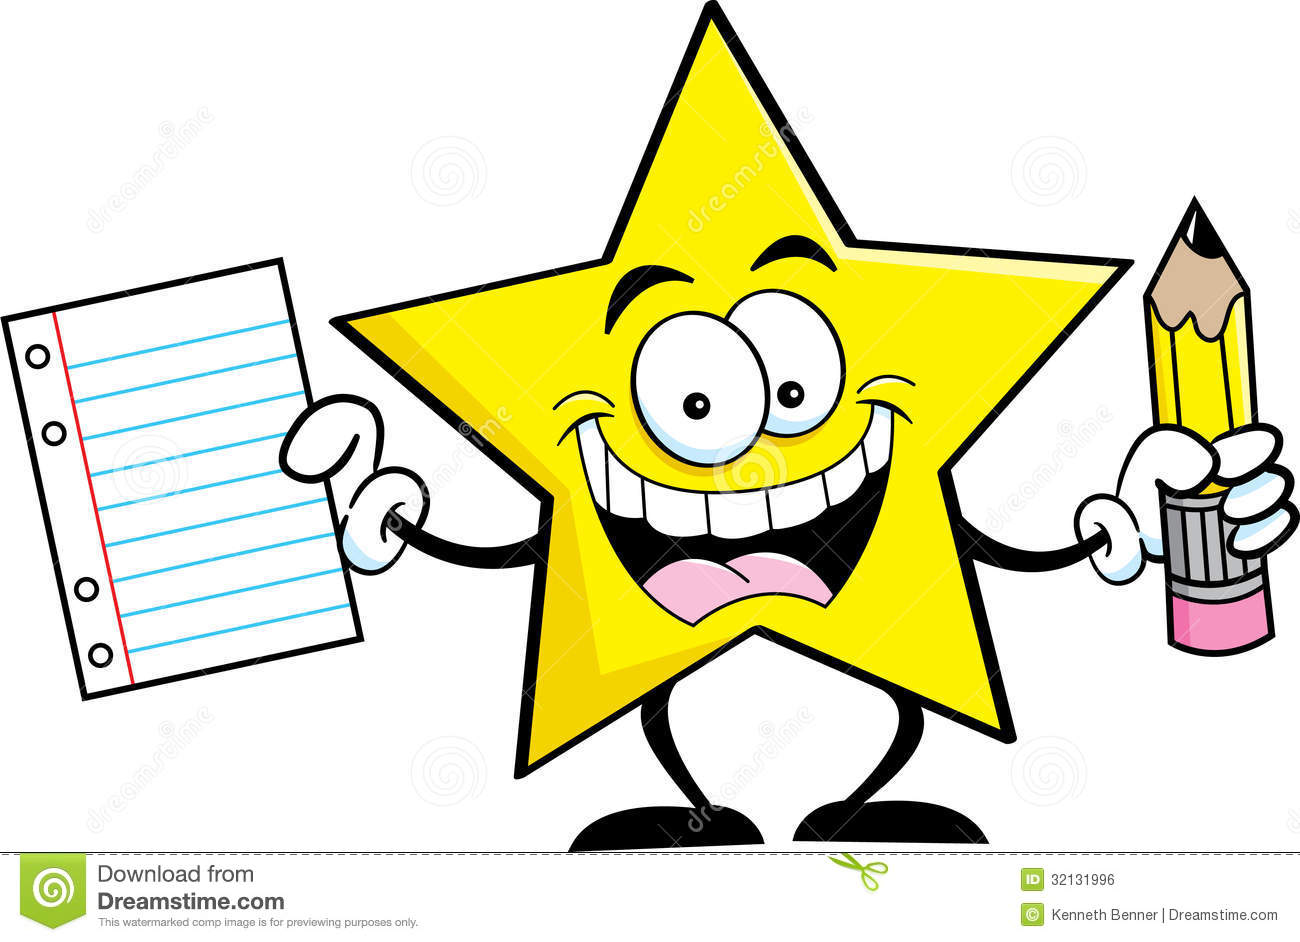 Handwriting clipart star. Pencil and paper images